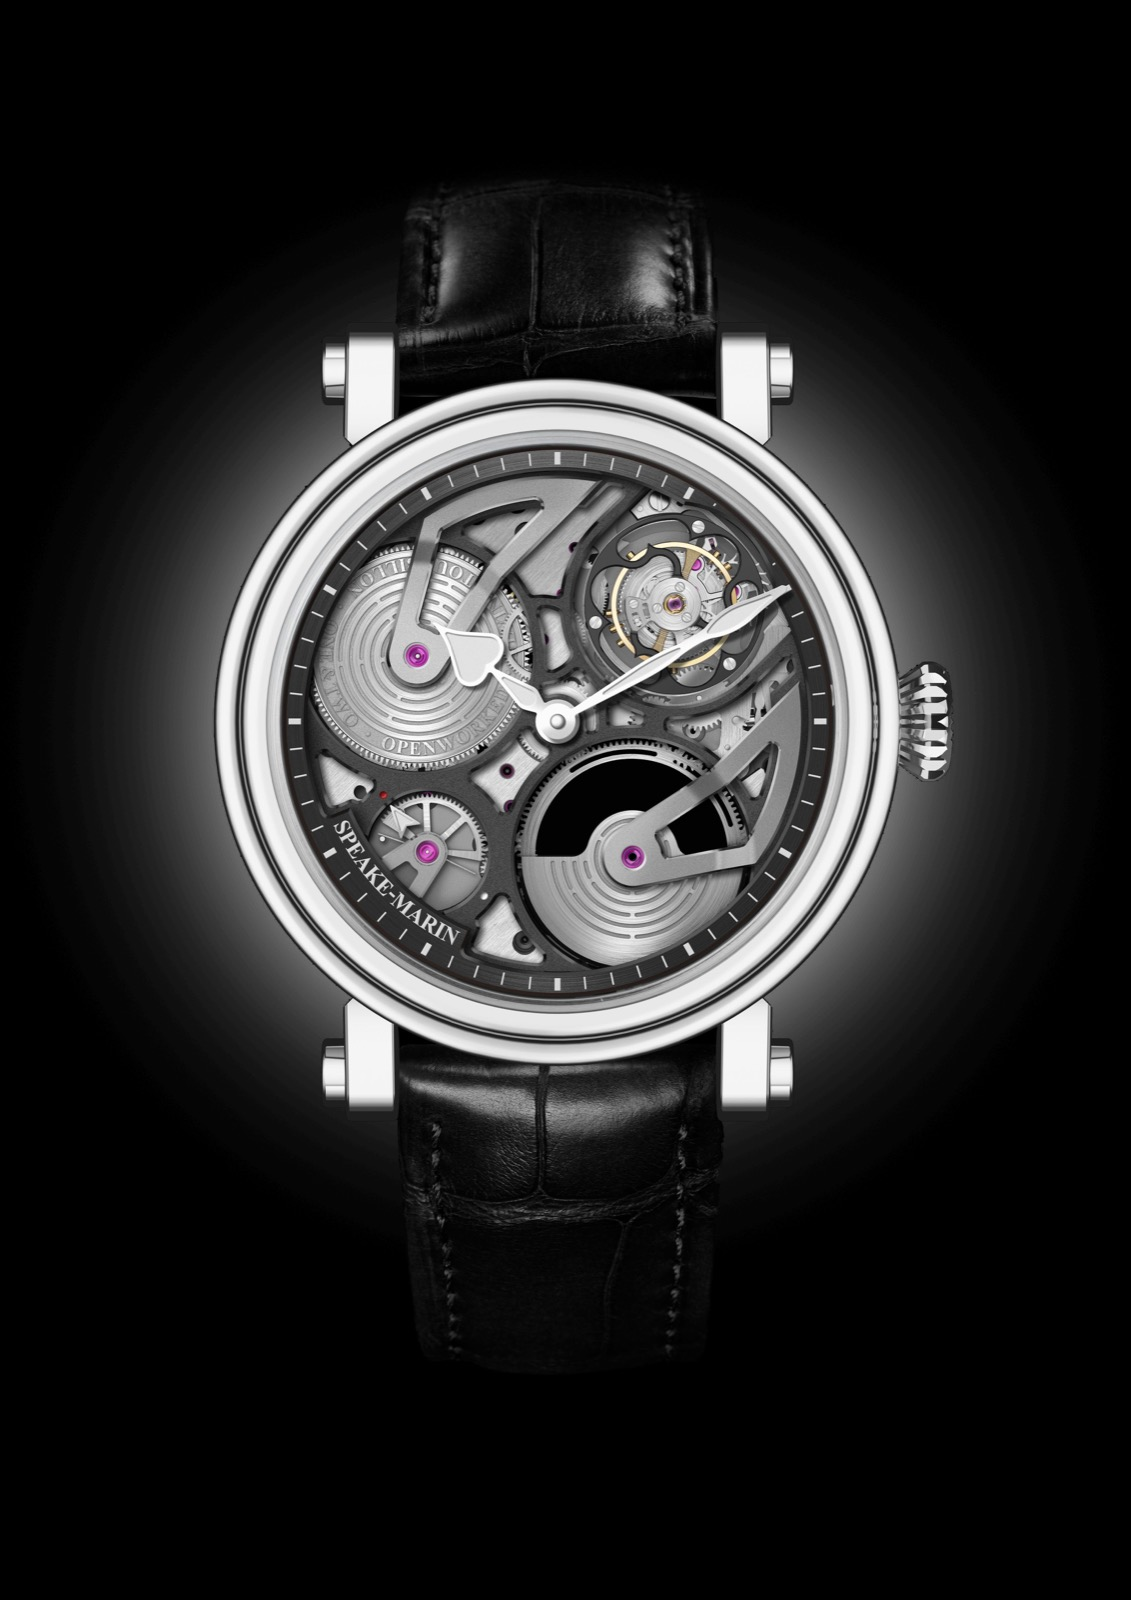 Speake-Marin One&Two Openworked Flying Tourbillon 42mm